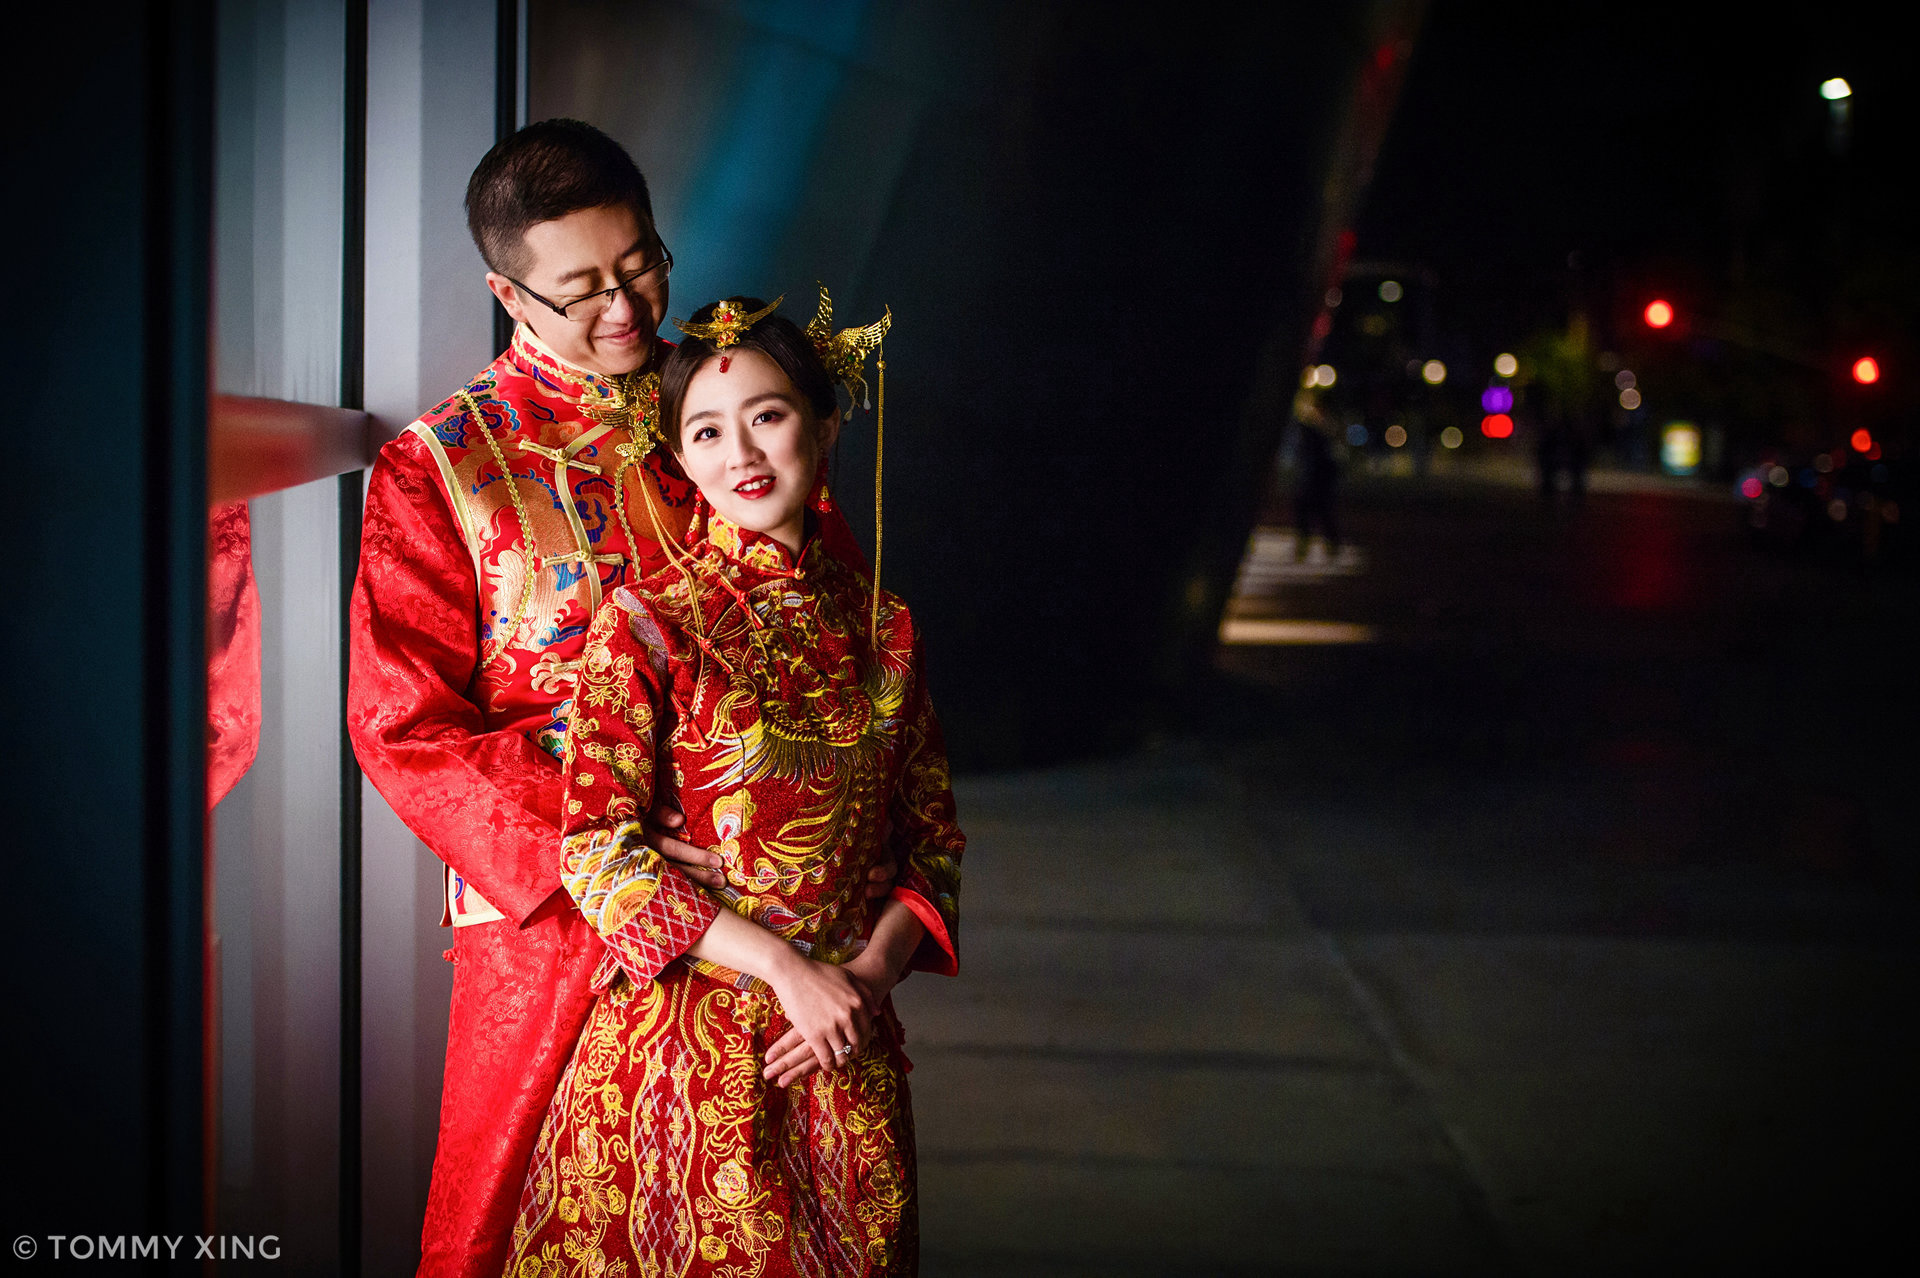 旧金山洛杉矶婚纱照 Tommy Xing Wedding Photography 29.jpg